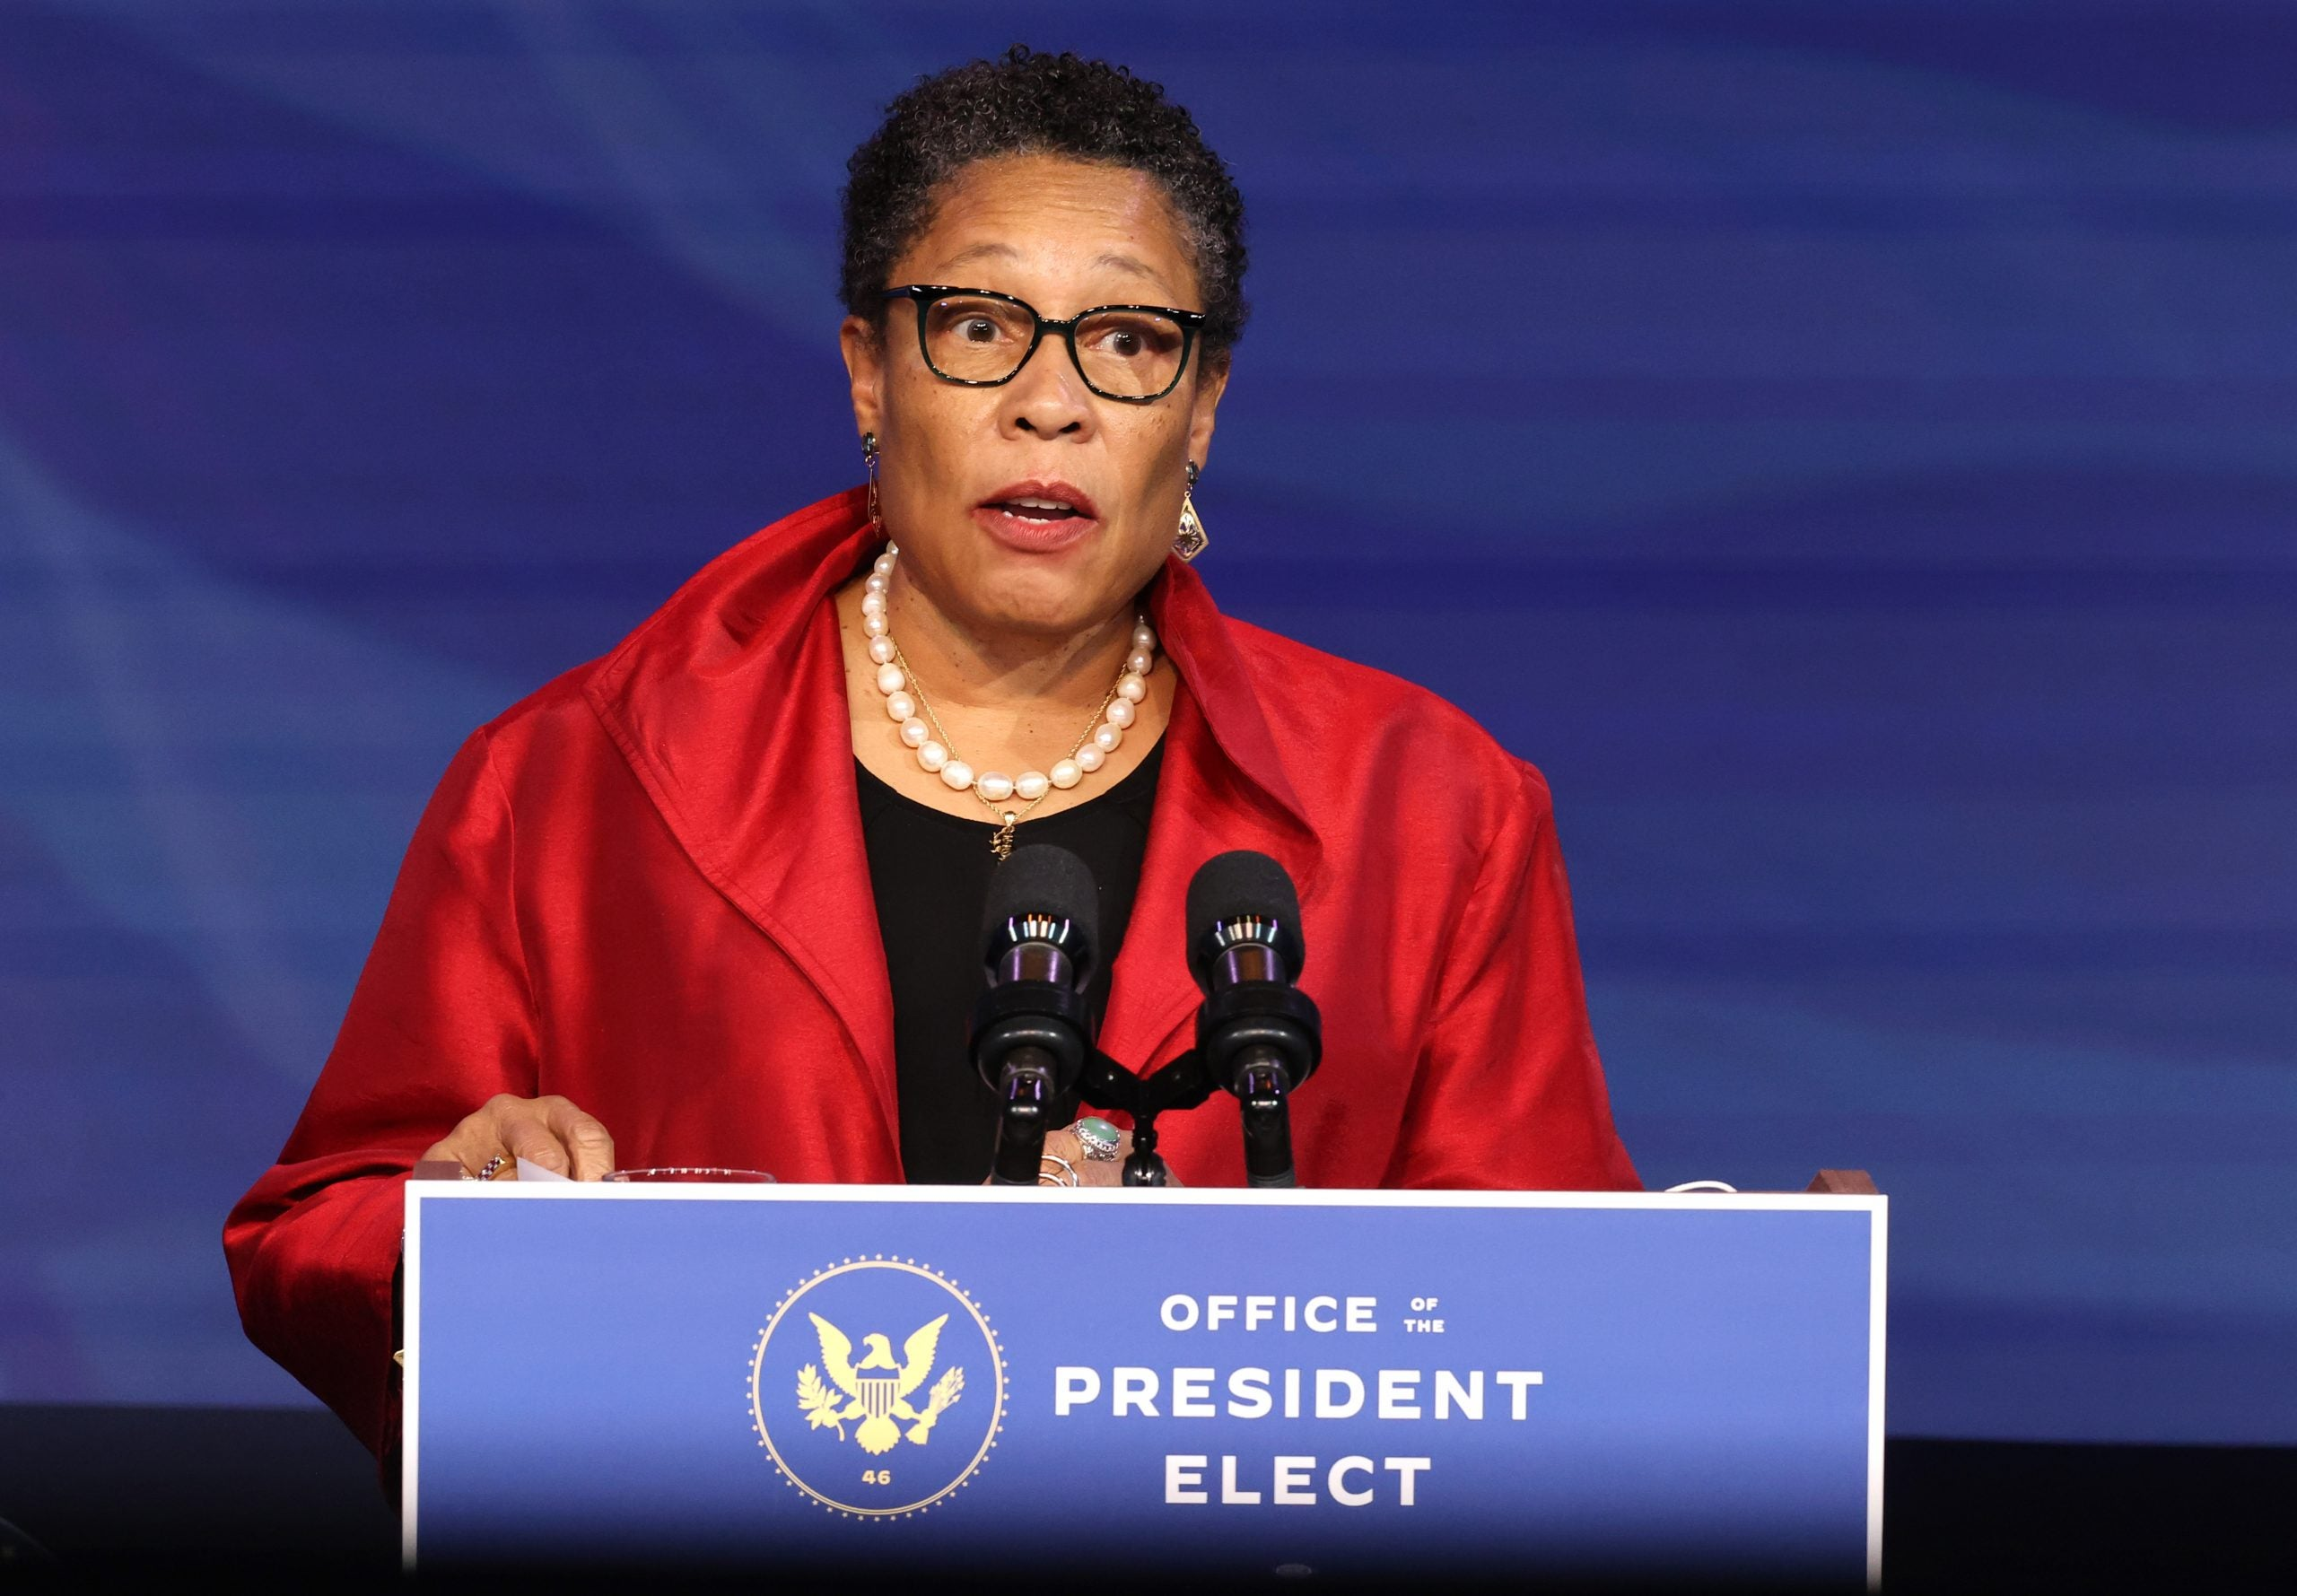 Congresswoman Marcia Fudge Confirmed As Next Secretary Of Housing And Urban Development